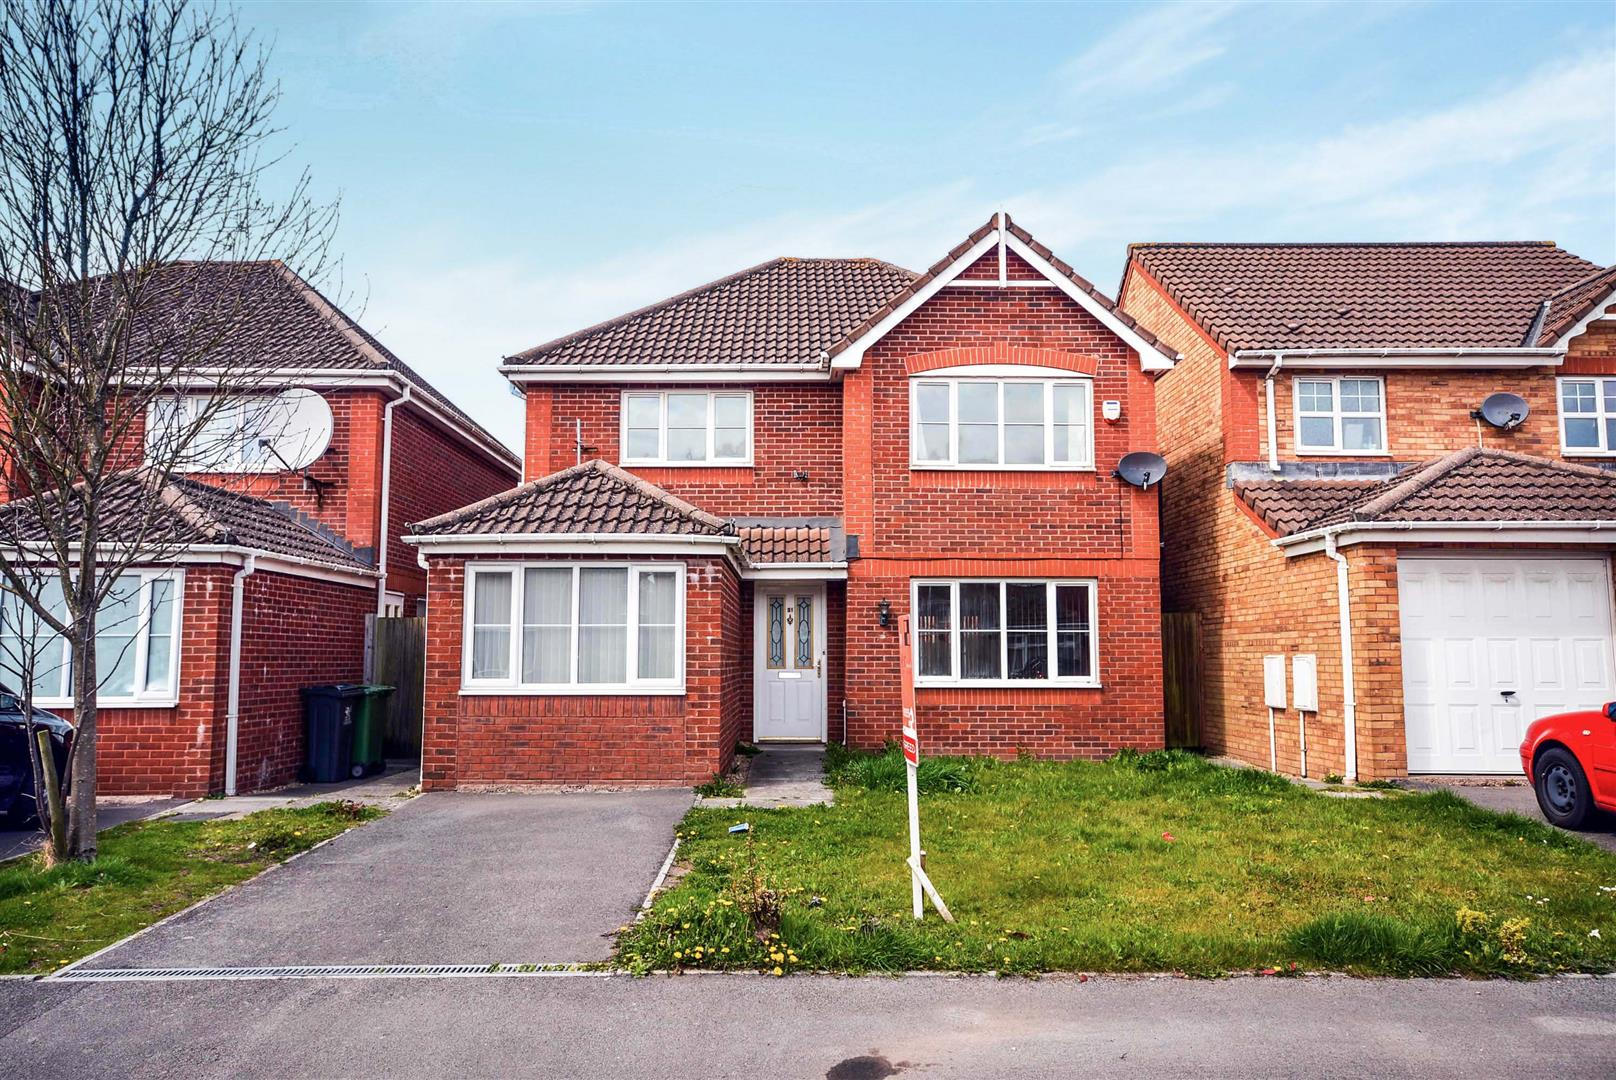 4 bed detached house for sale in Glan Rhymni, Cardiff 0